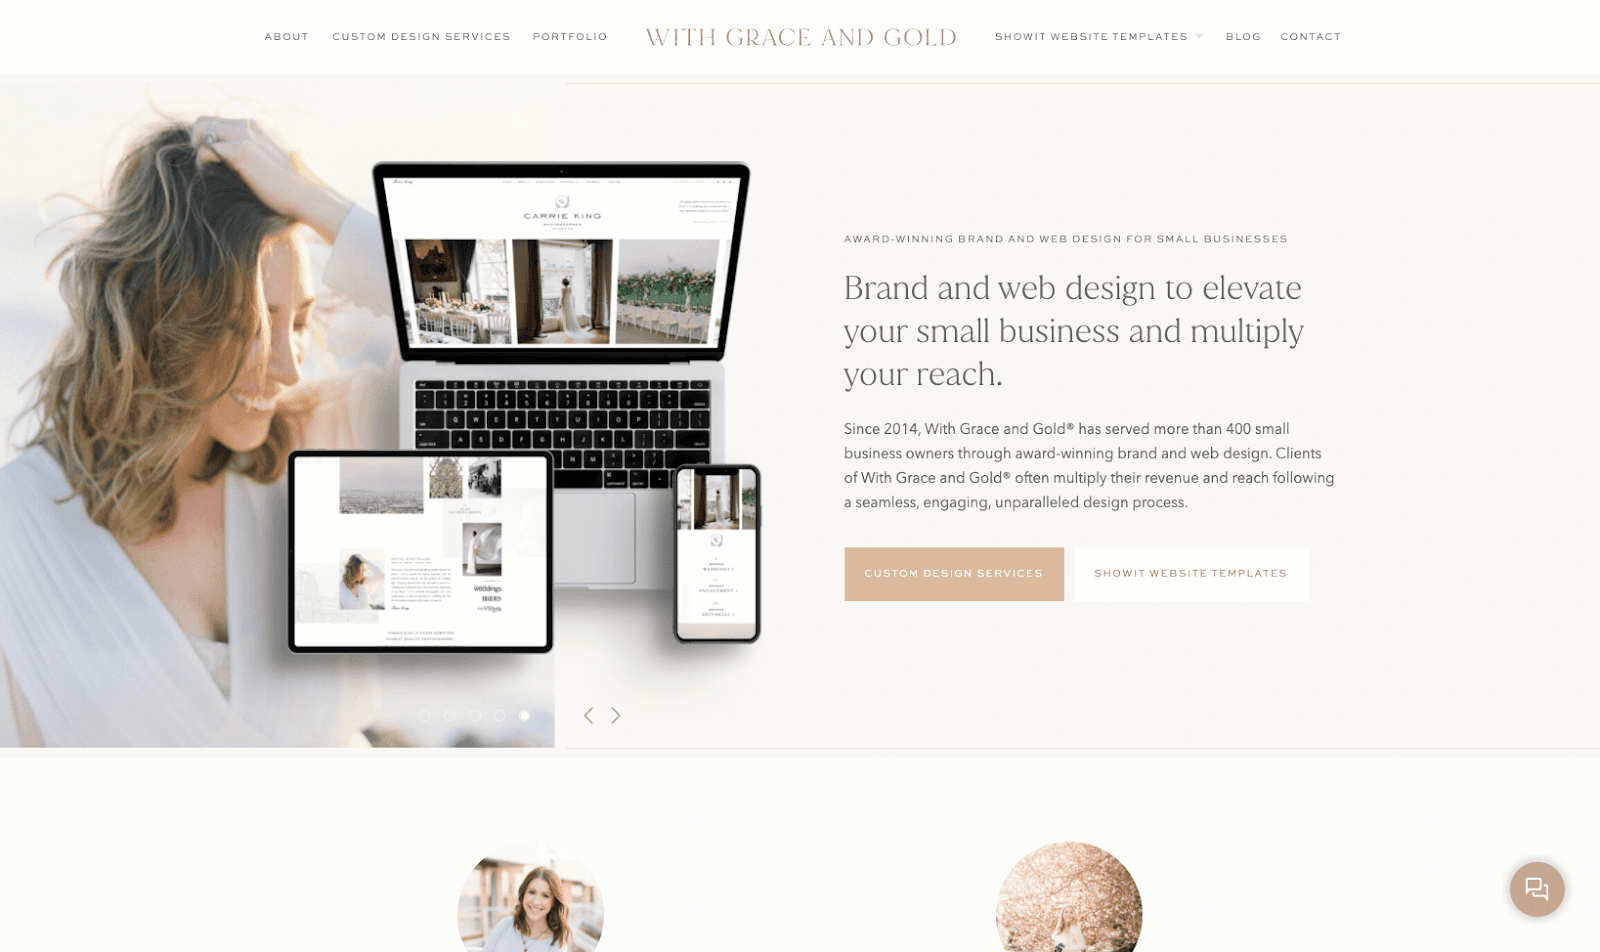 A screenshot of a boutique branding and web design studio called With Grace and Gold.